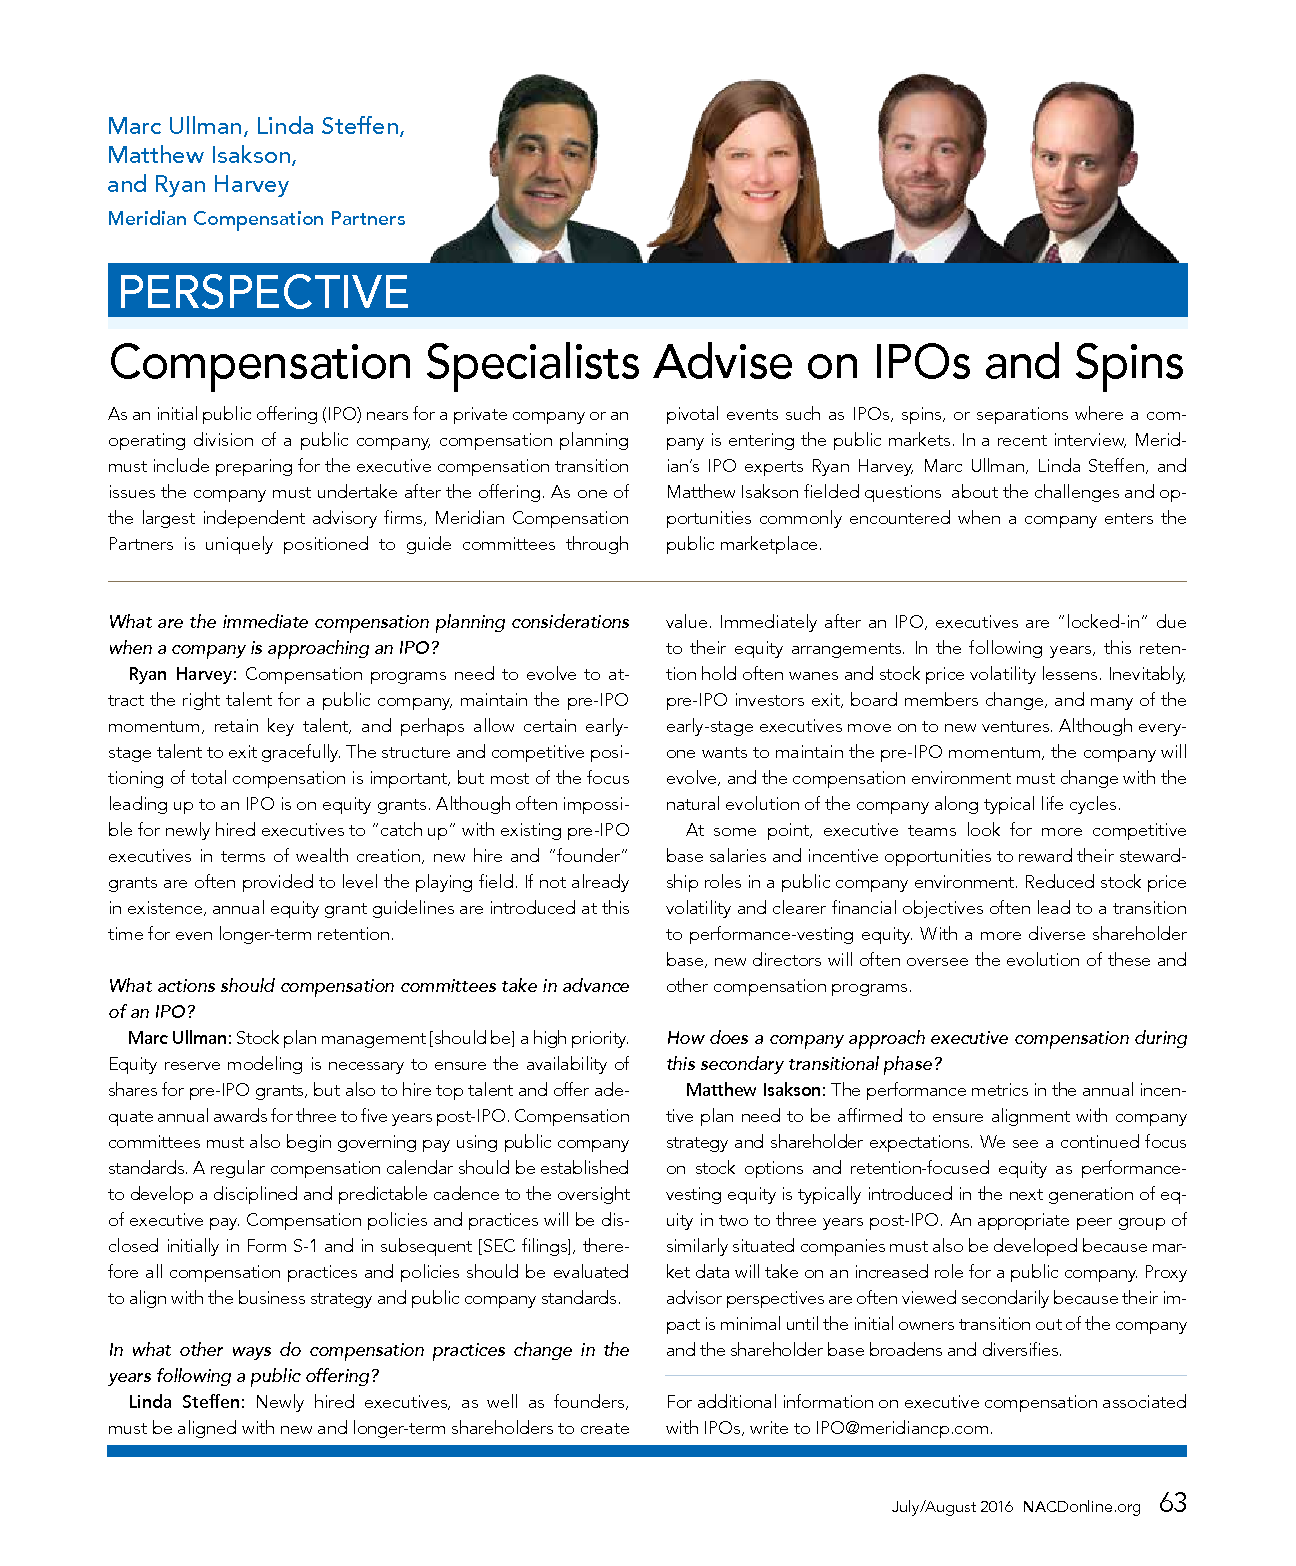 Compensation Specialists Advise on IPOs and Spins (PDF)